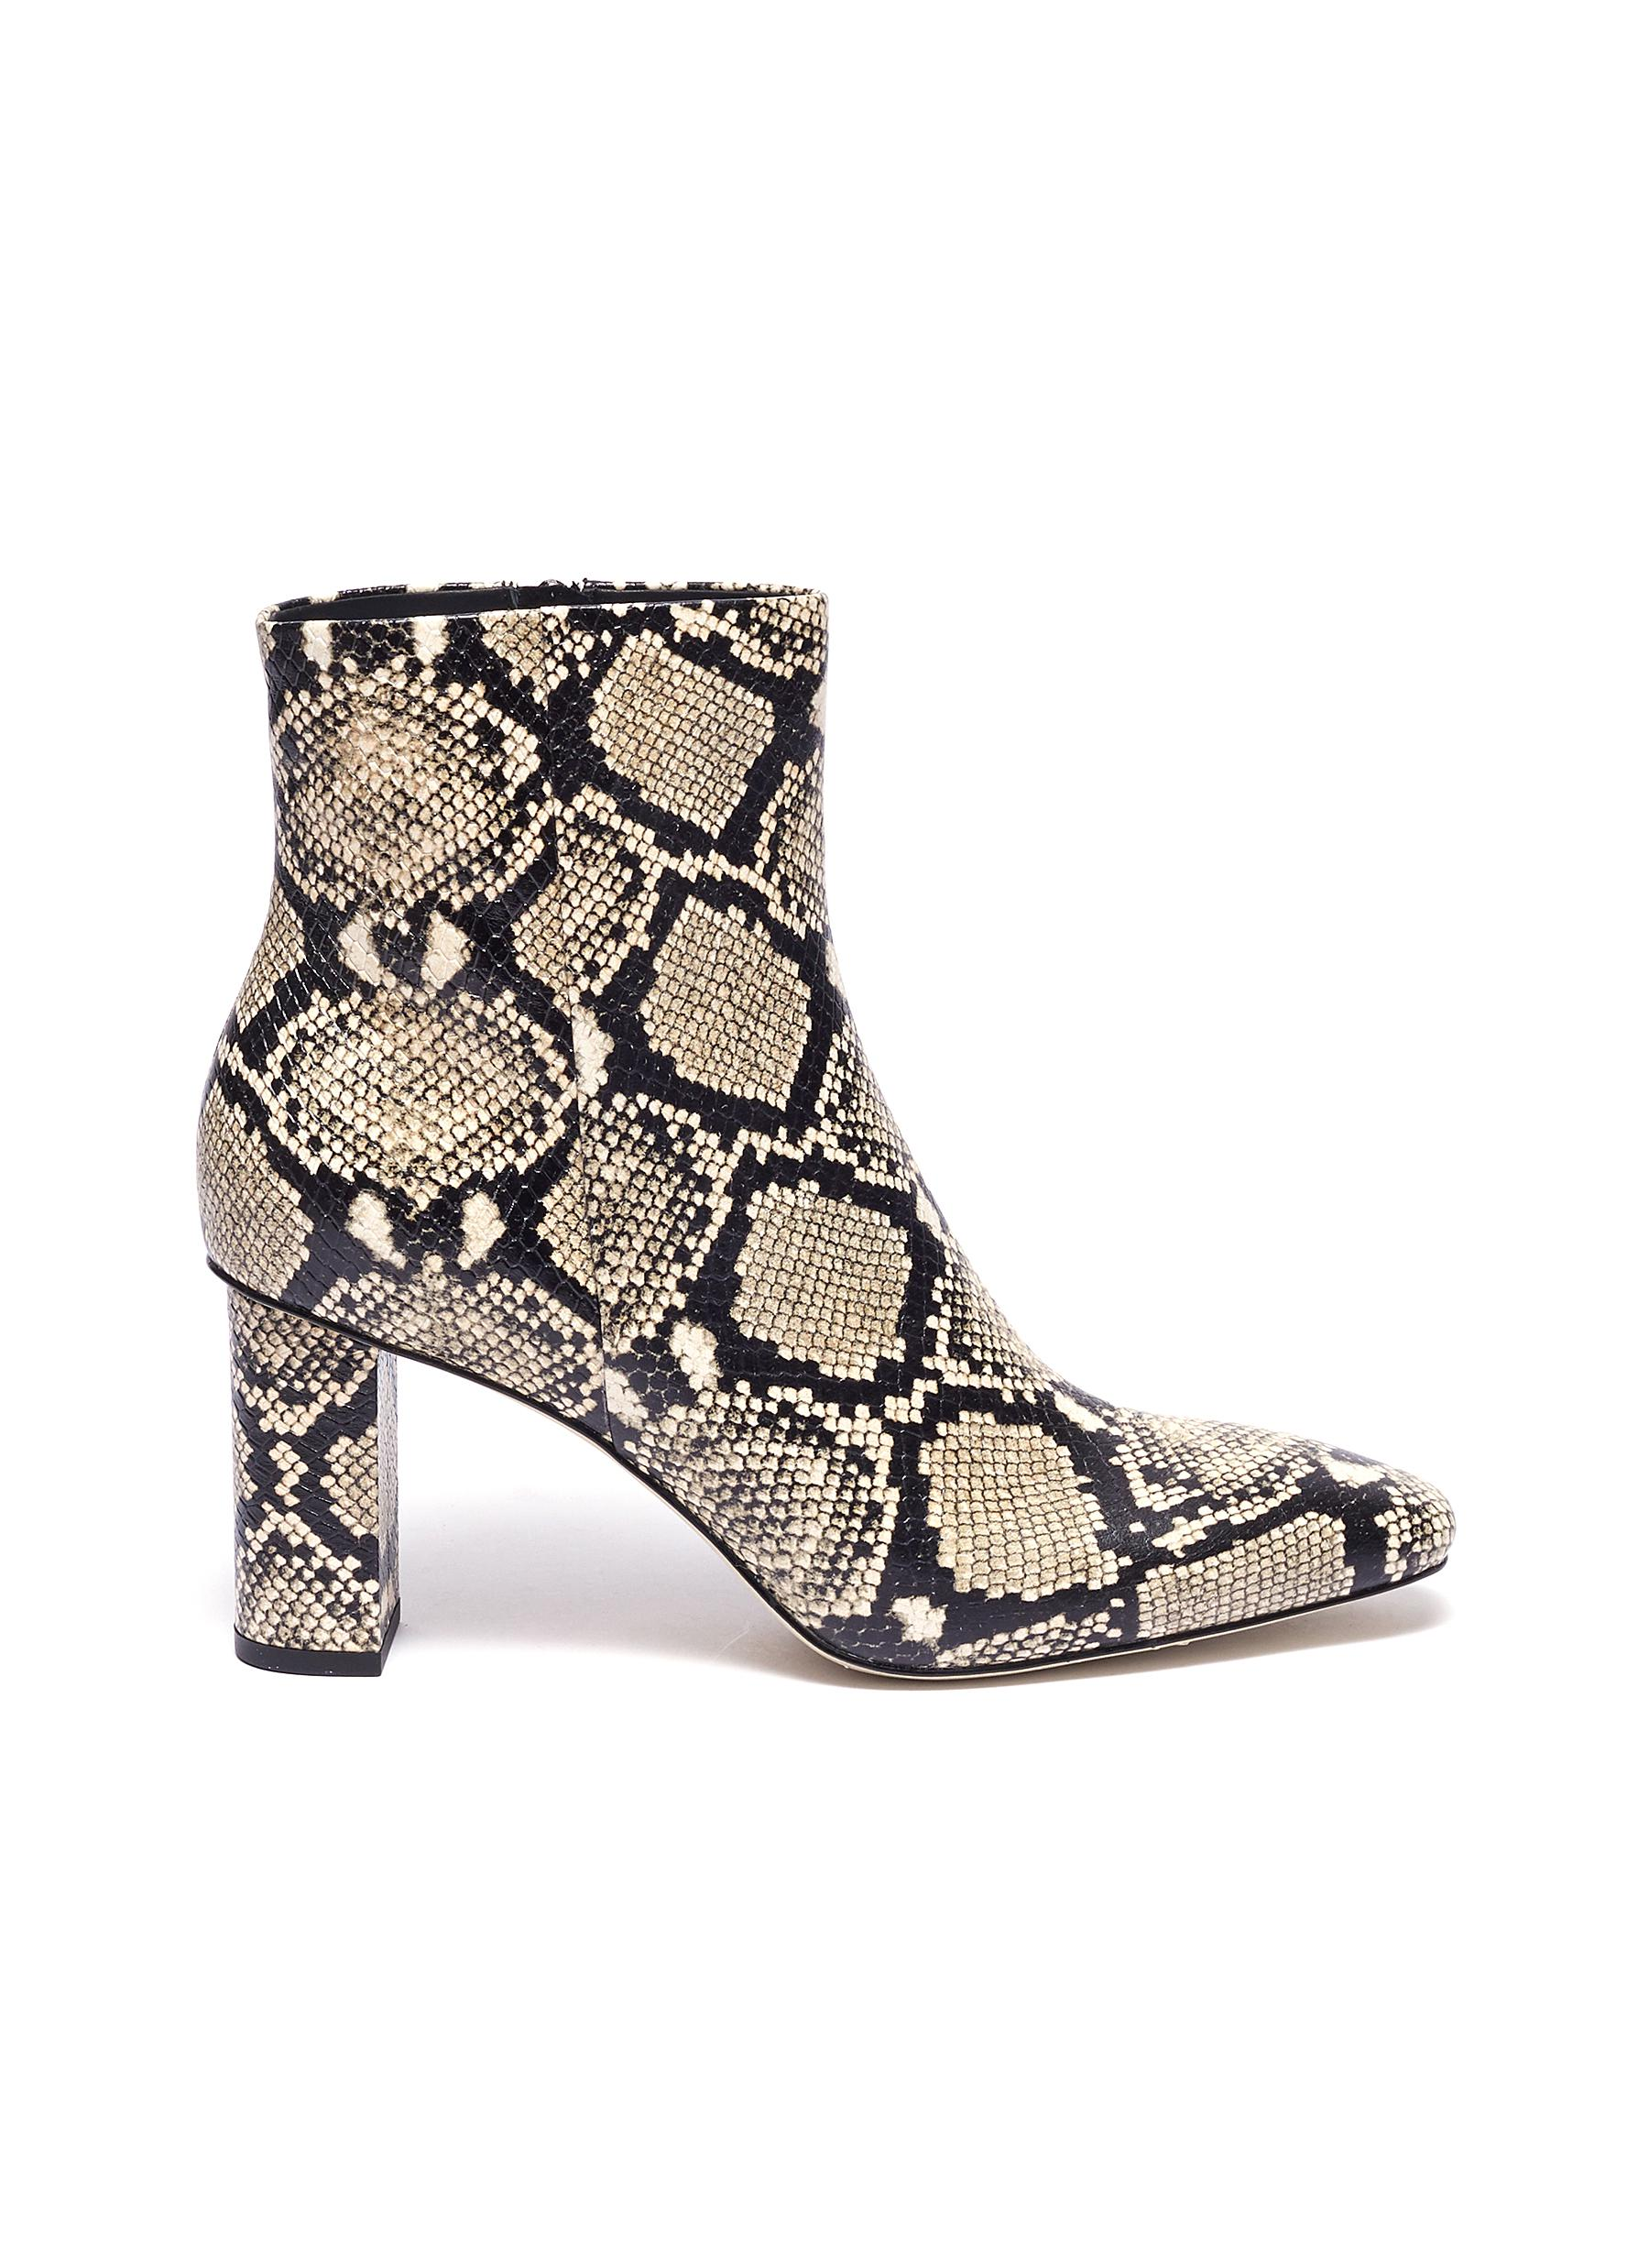 Bailey python embossed leather ankle boots by Pedder Red